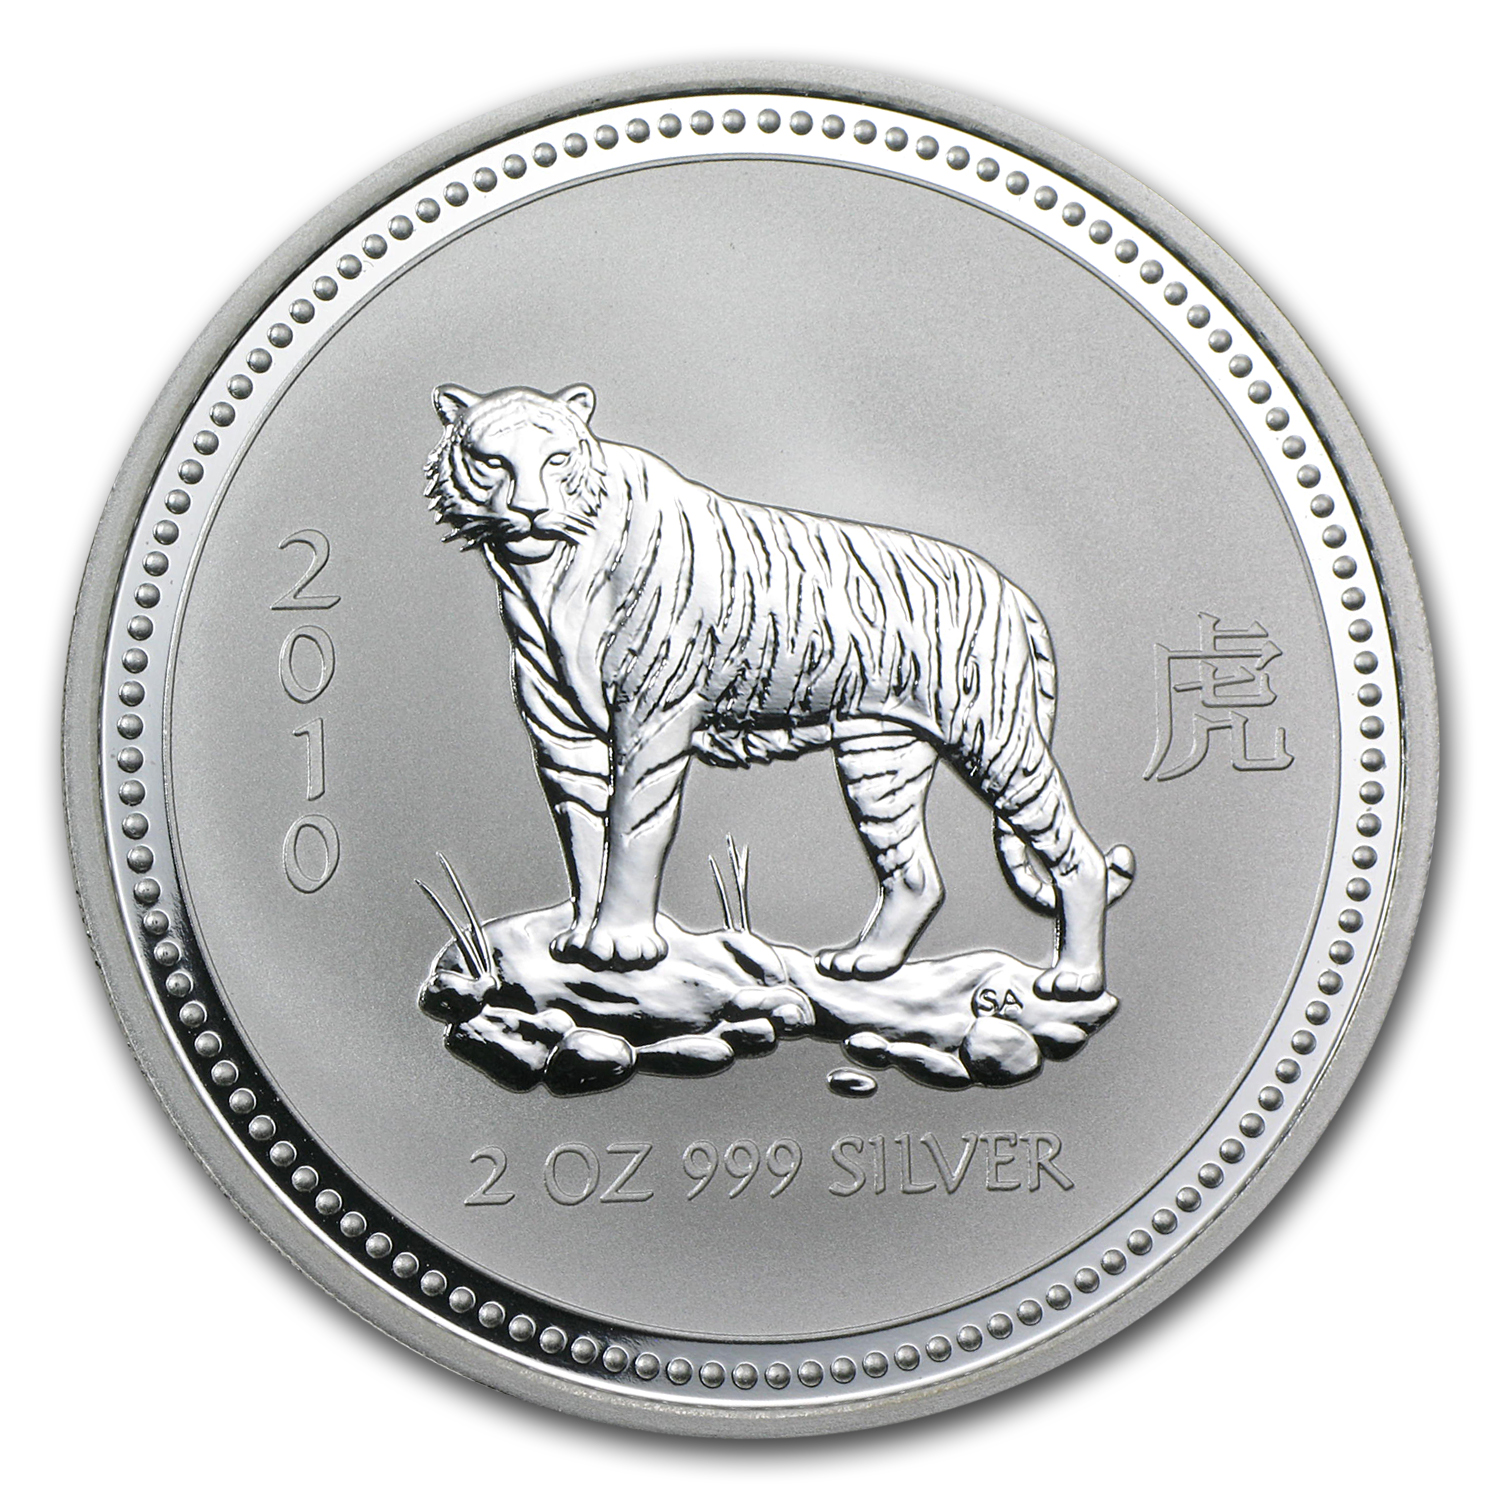 2010 2 oz Silver Australian Year of the Tiger BU (Series I)